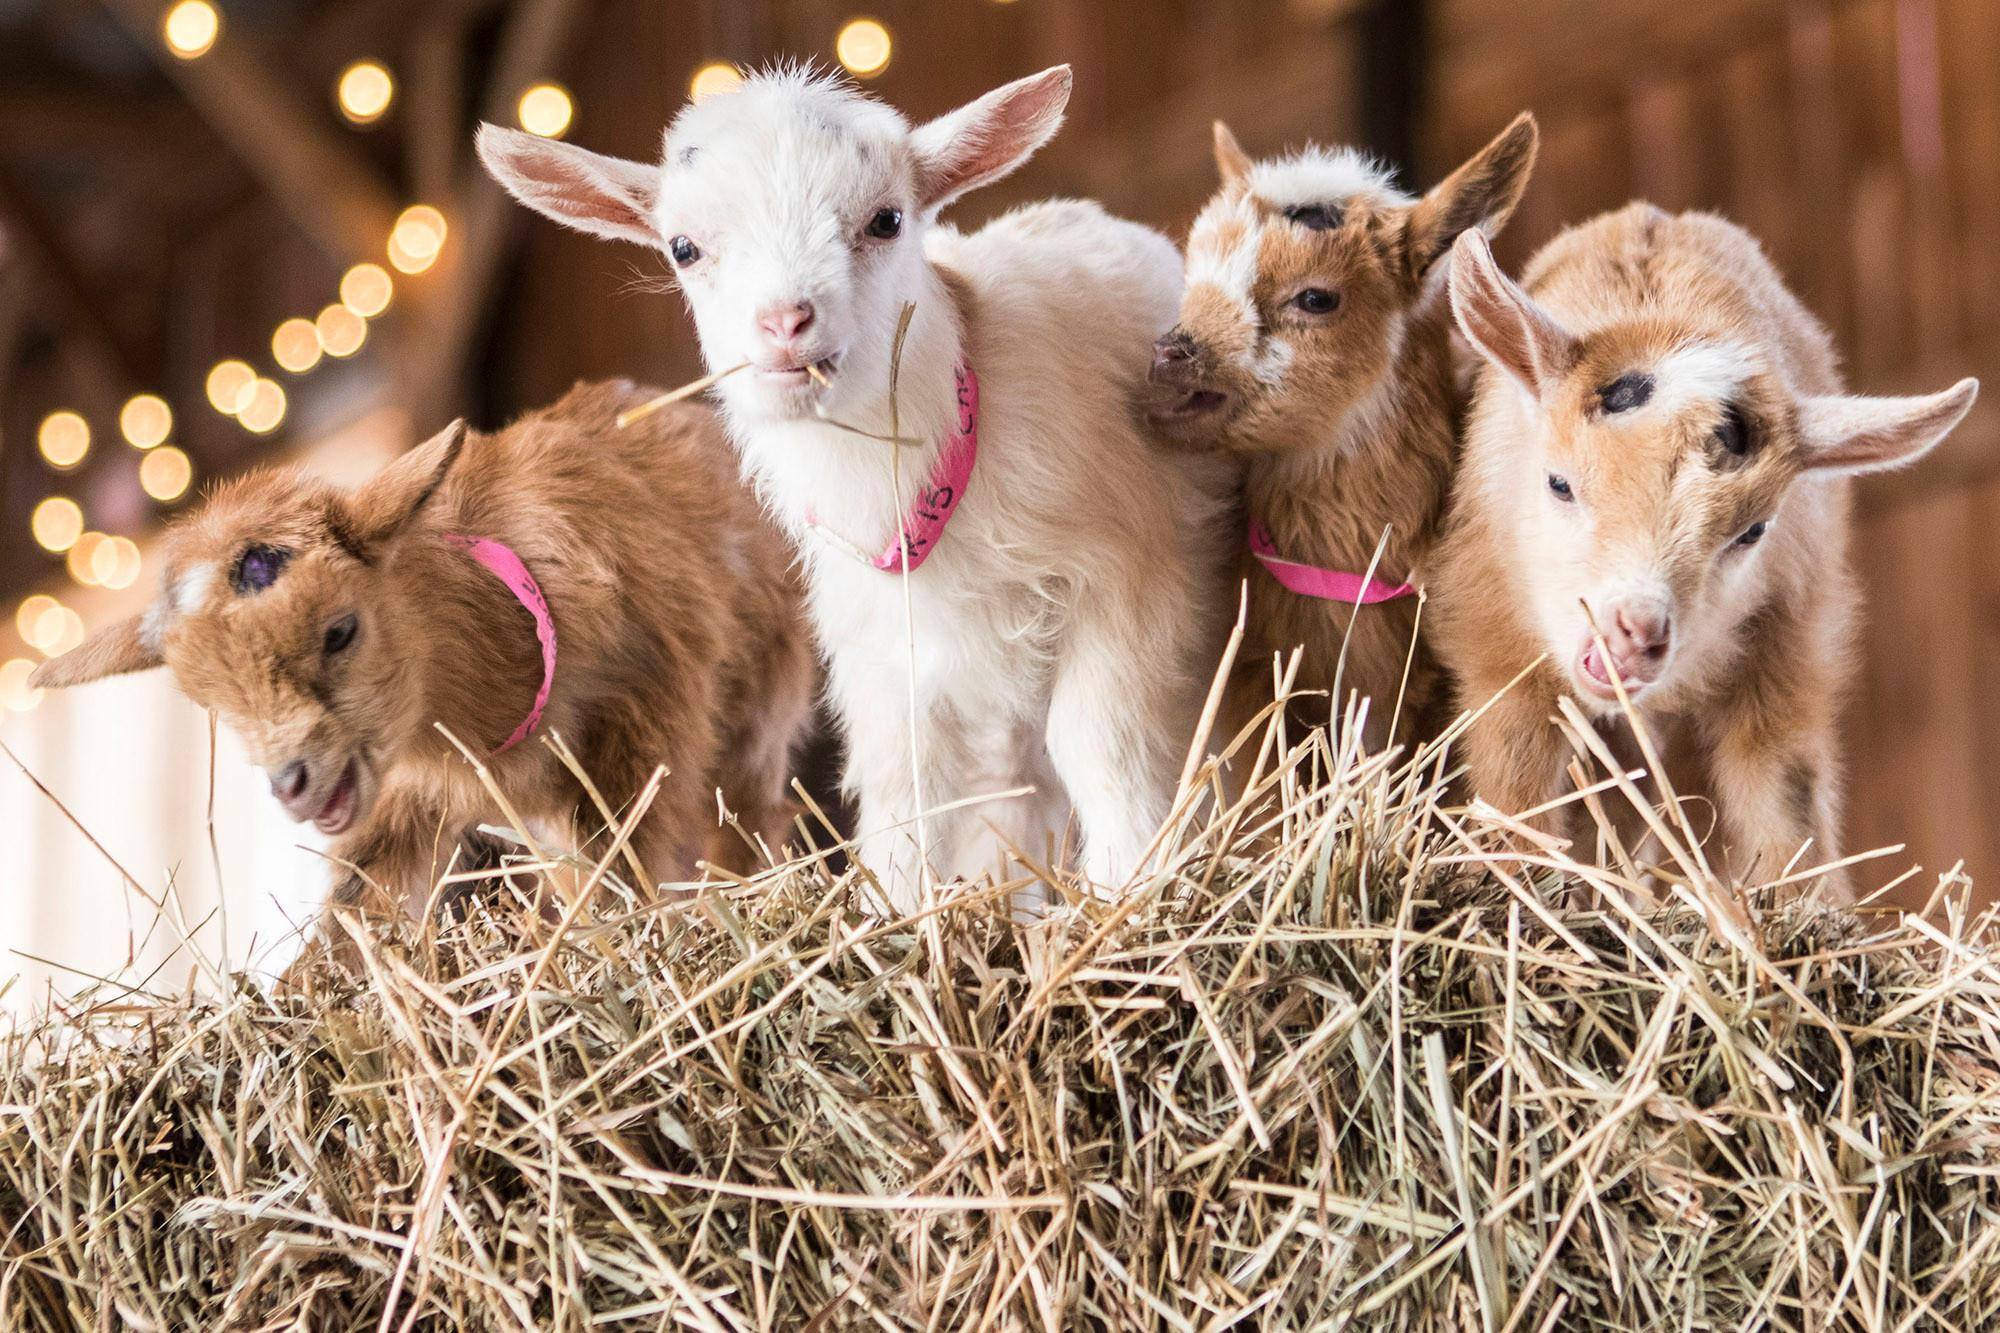 Stories in the Park at Mercer: Storytime with a Goat | Iowa City